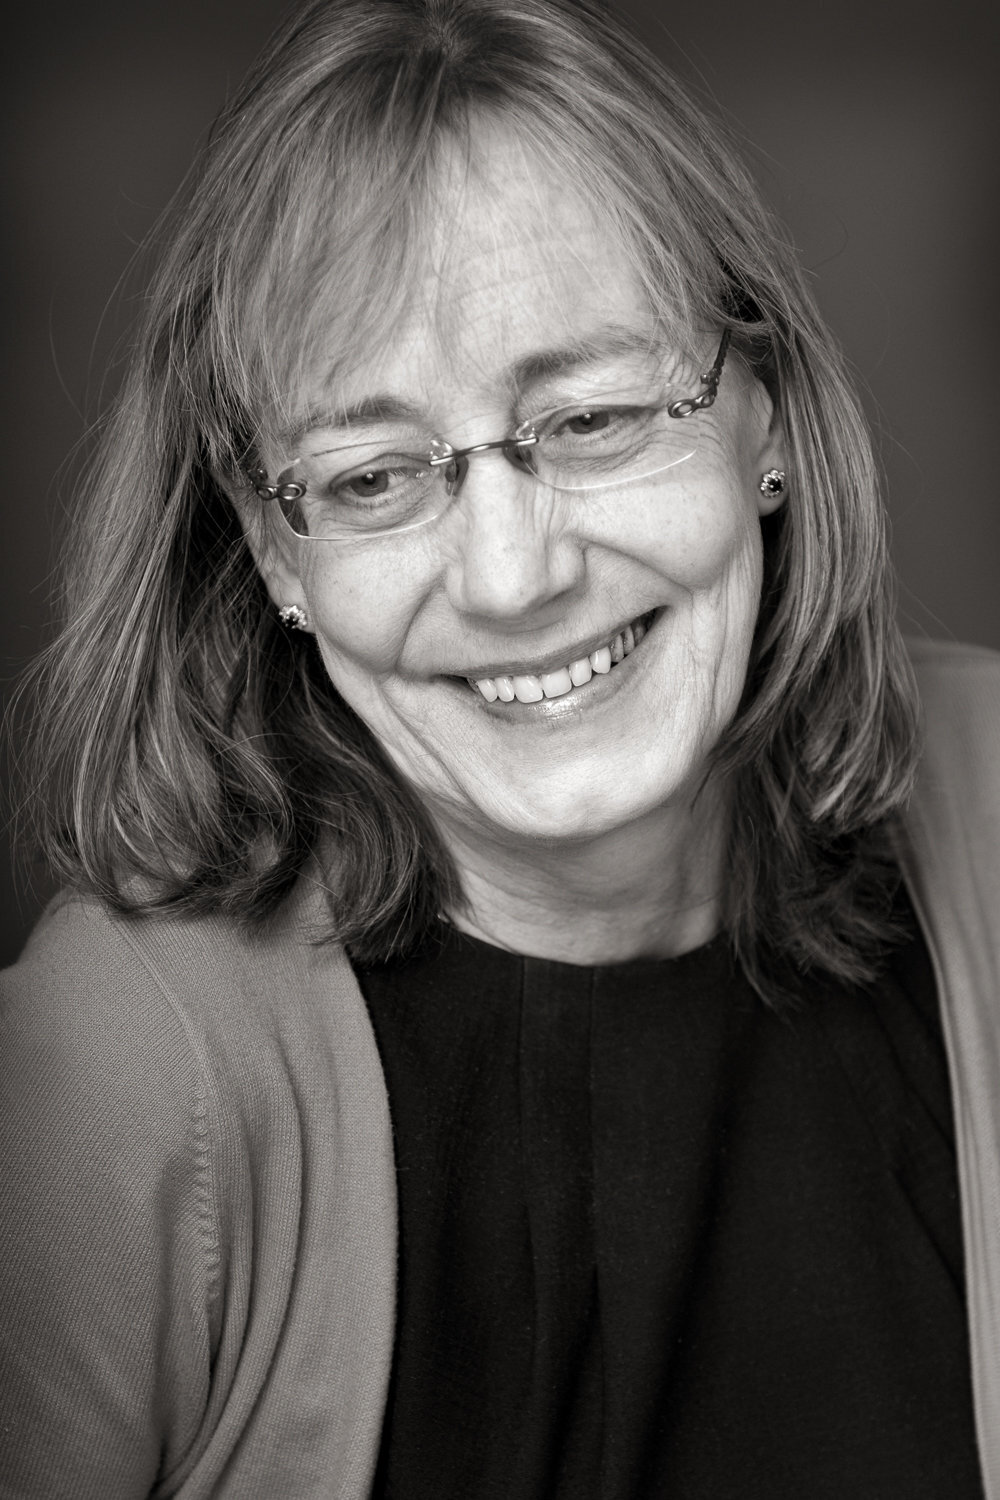 Black & white portrait of an  female  doctor wearing glasses and smiling